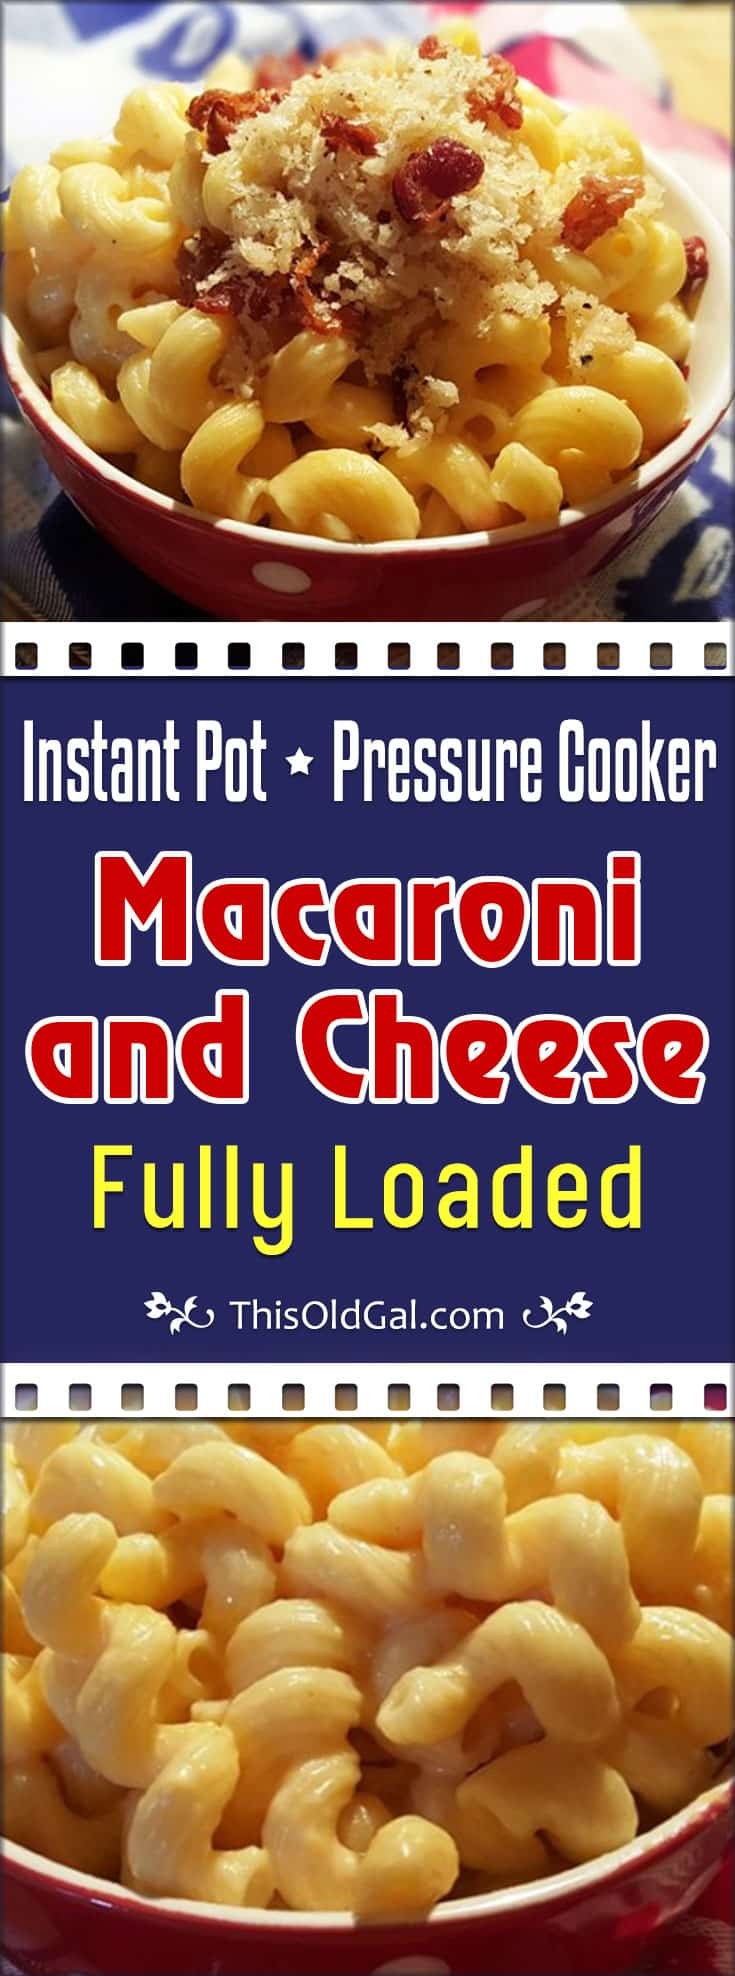 Pressure Cooker Macaroni and Cheese, Fully Loaded